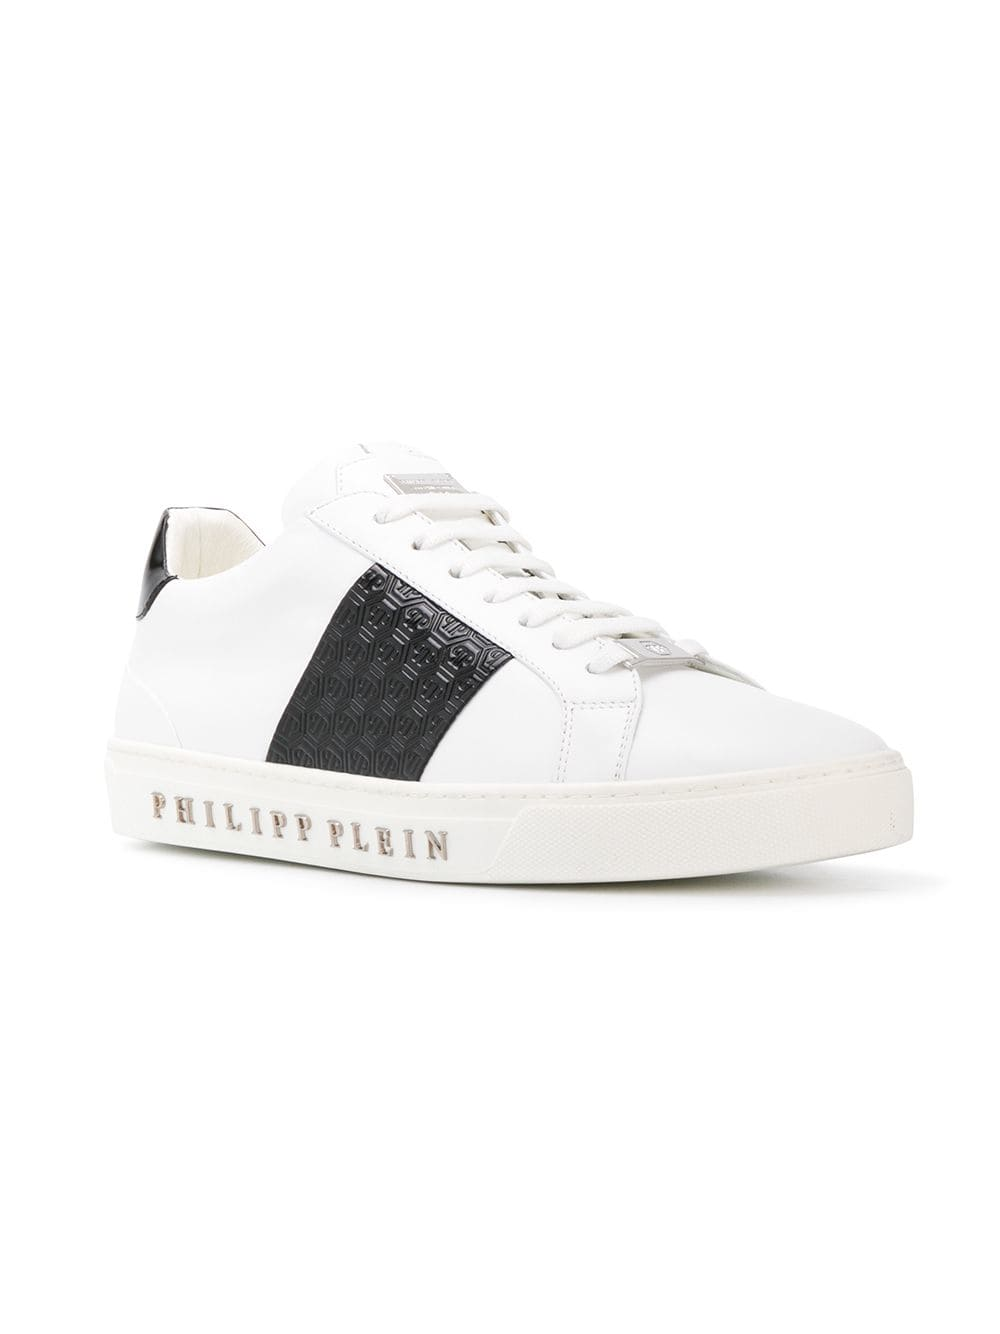 PHILIPP PLEIN low-top sneakers | Maison De Fashion